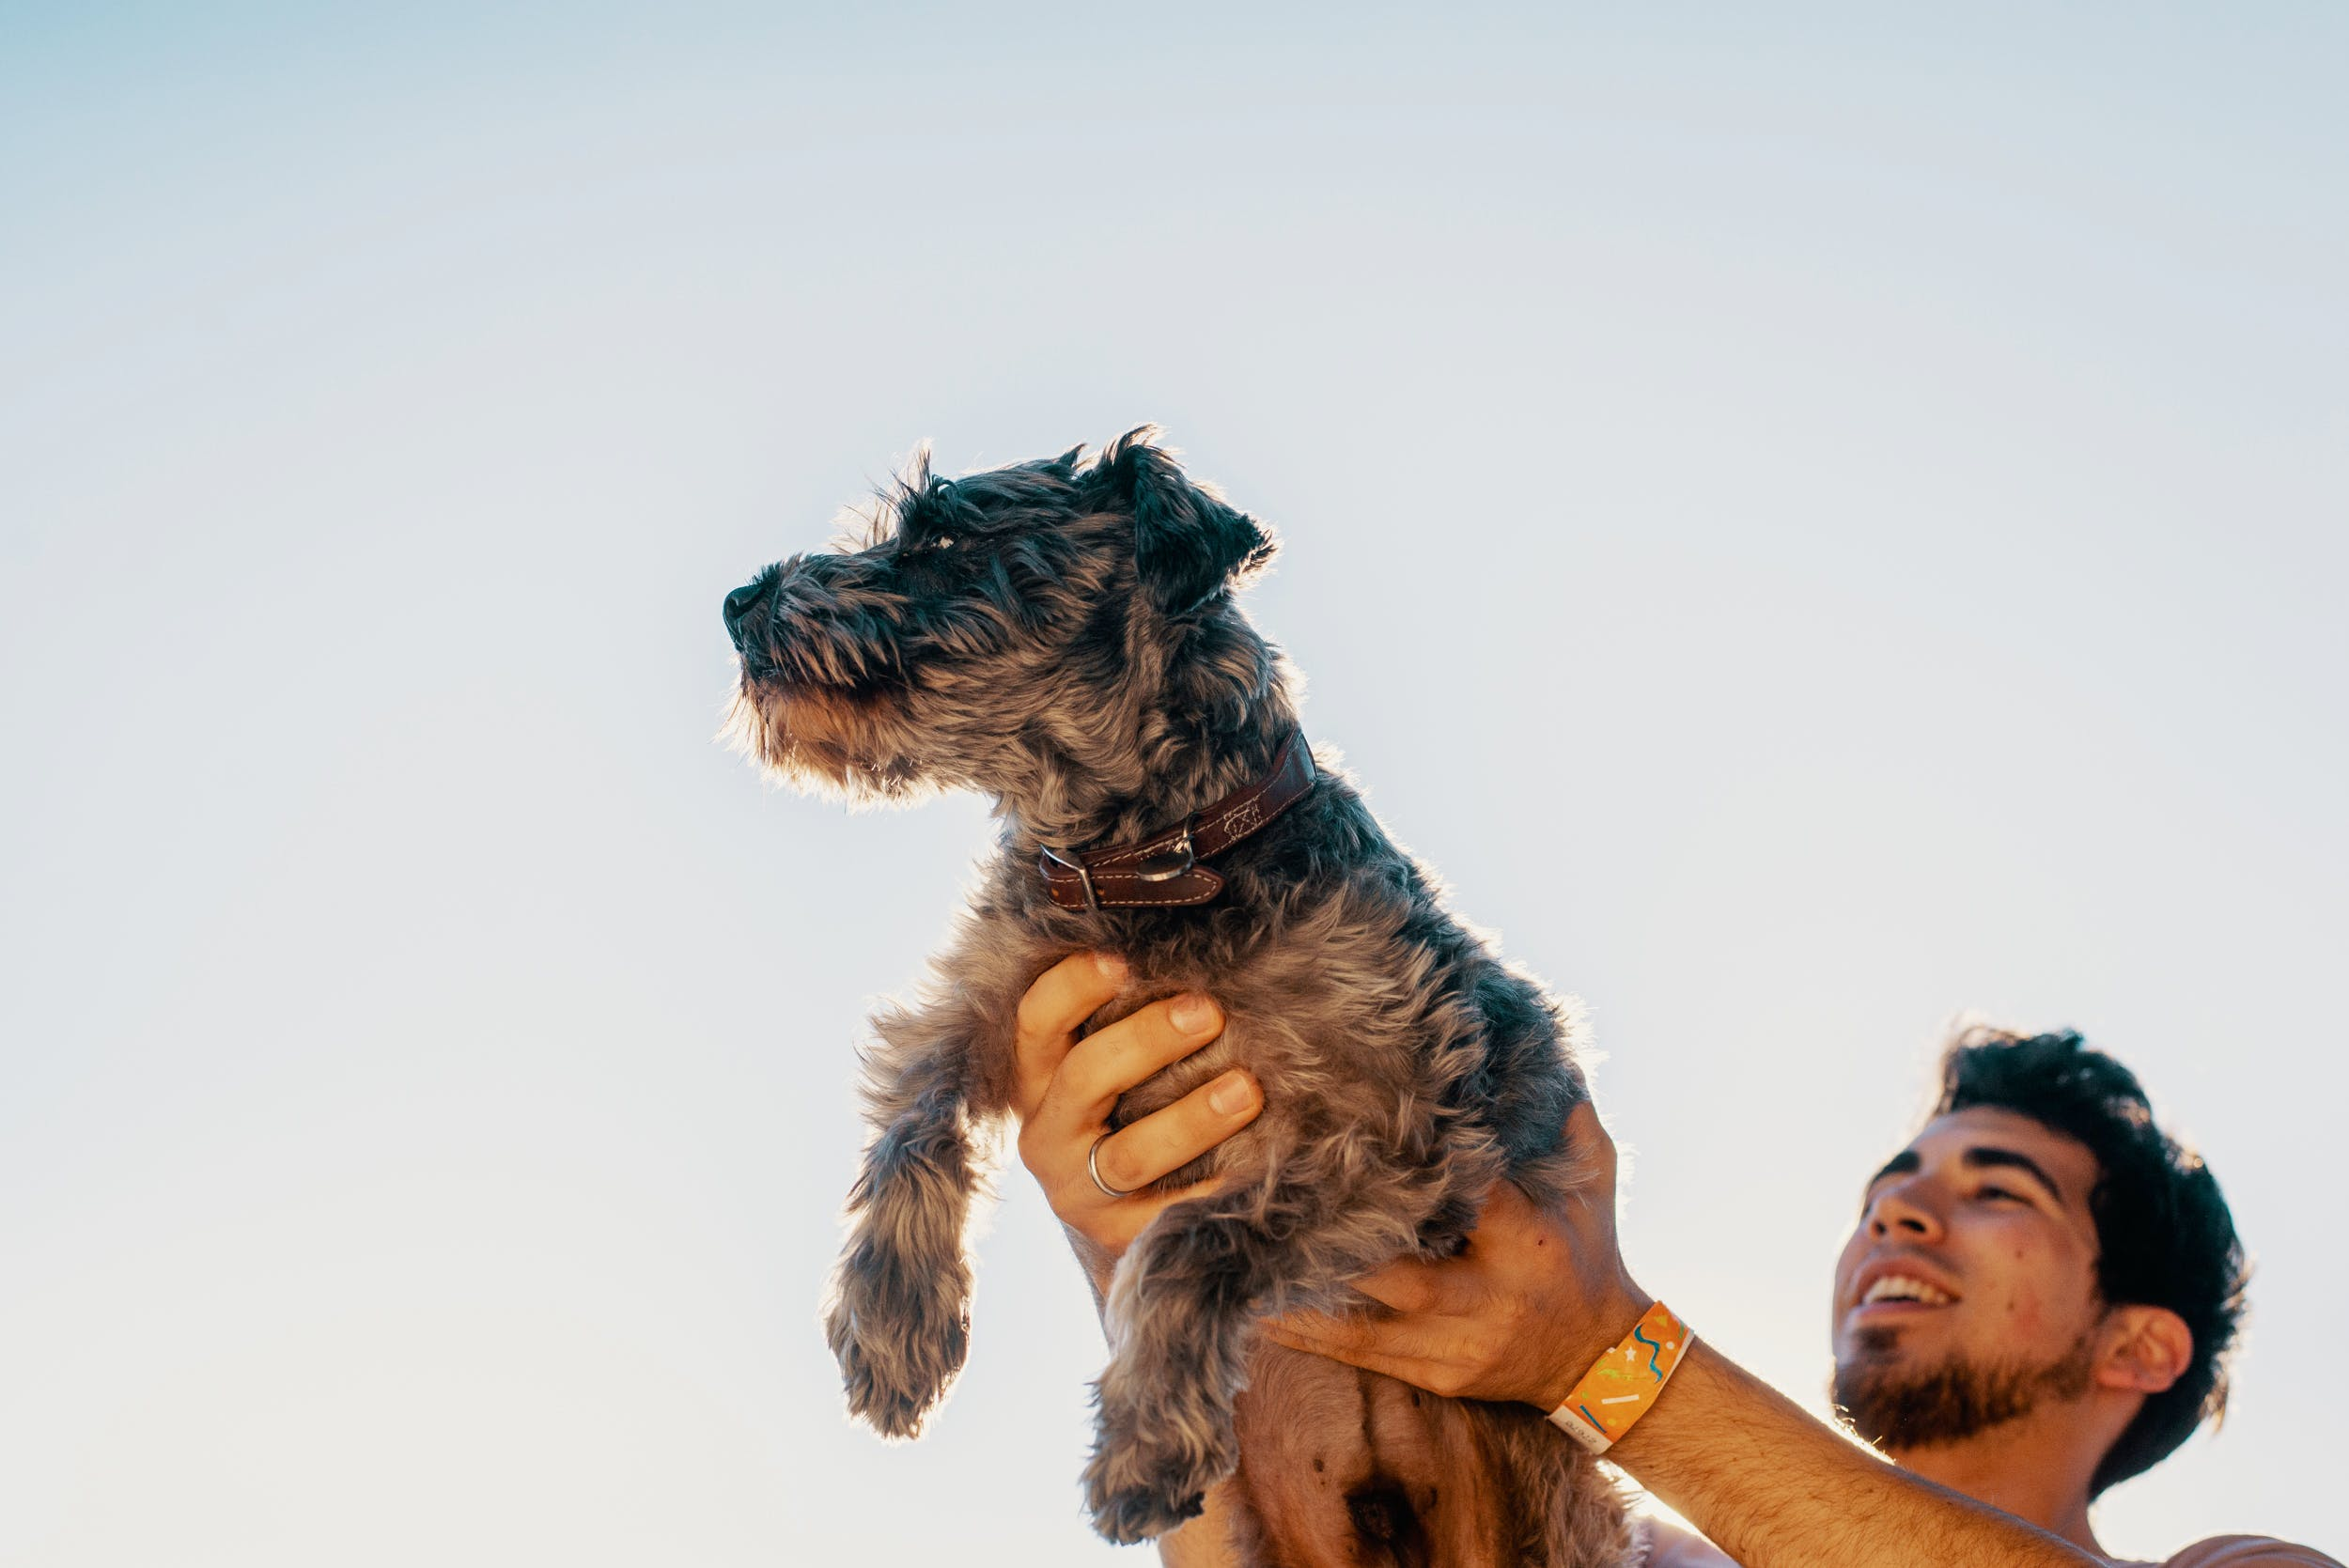 Best CBD Oil For Dogs 57 Martha Stewart Joins Forces with Canopy Growth to Develop CBD Pet Products